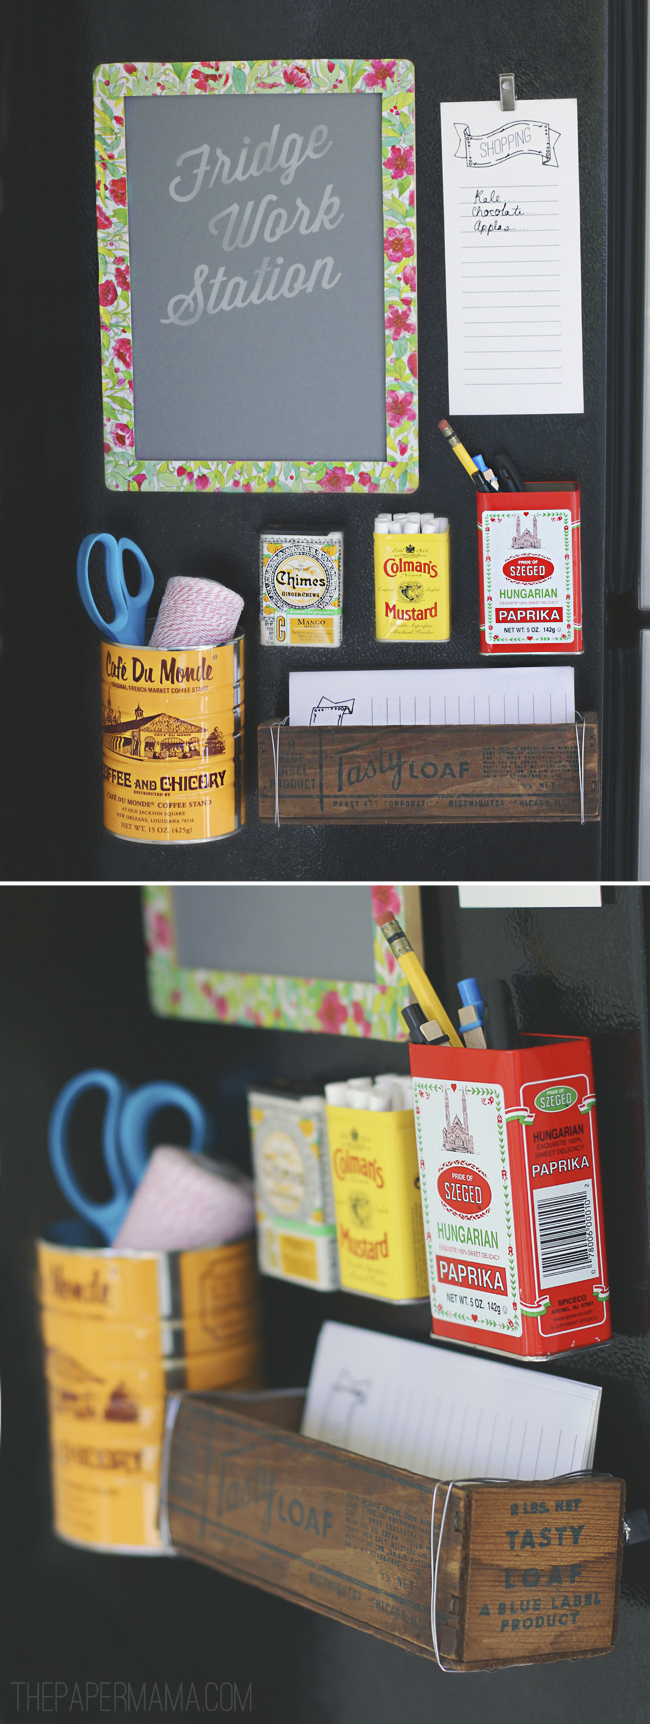 Set up a work station on the side of your refrigerator to keep your notes and pens in one spot. I made this work station using old tins and containers. From the Better Homes and Gardens blog.